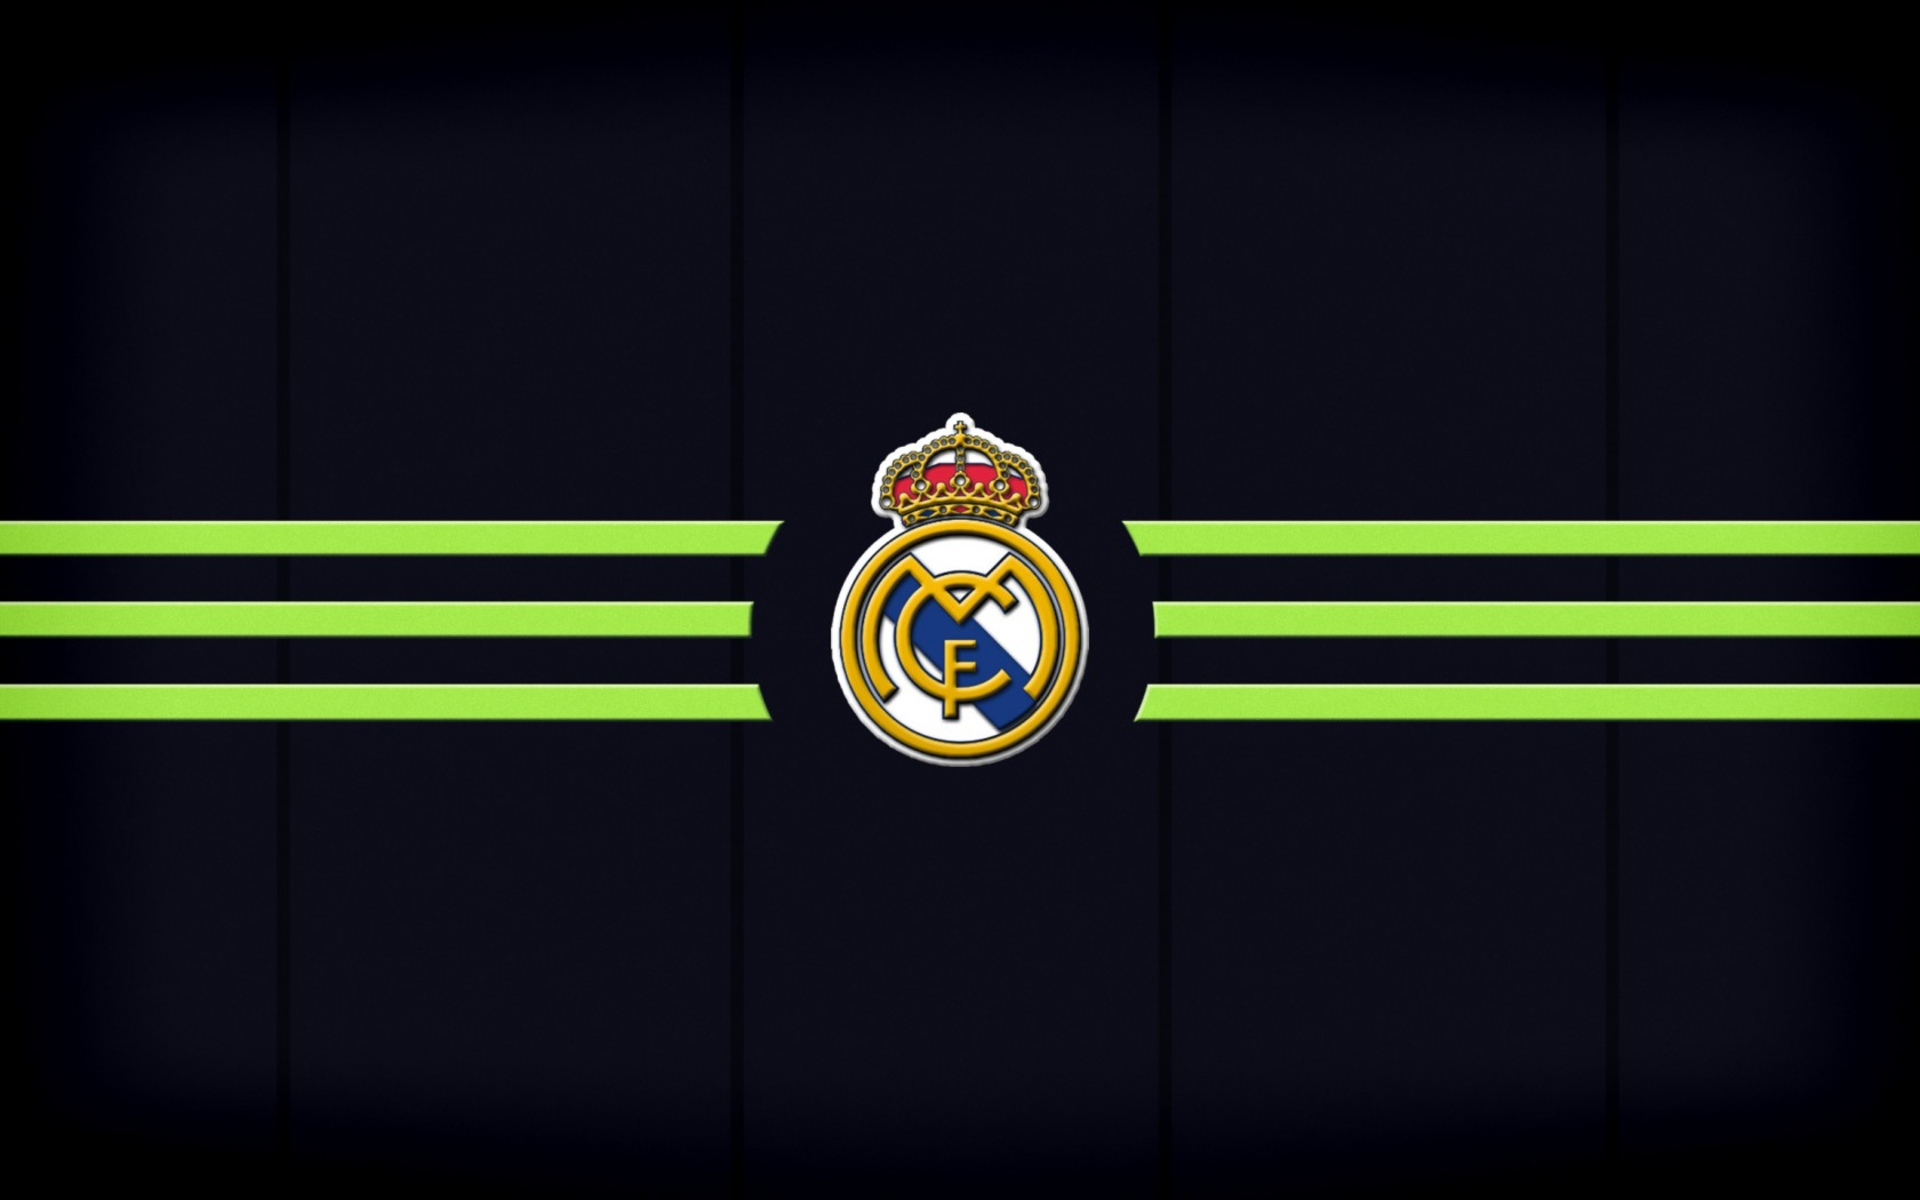 Real Madrid Wallpaper PC Computer